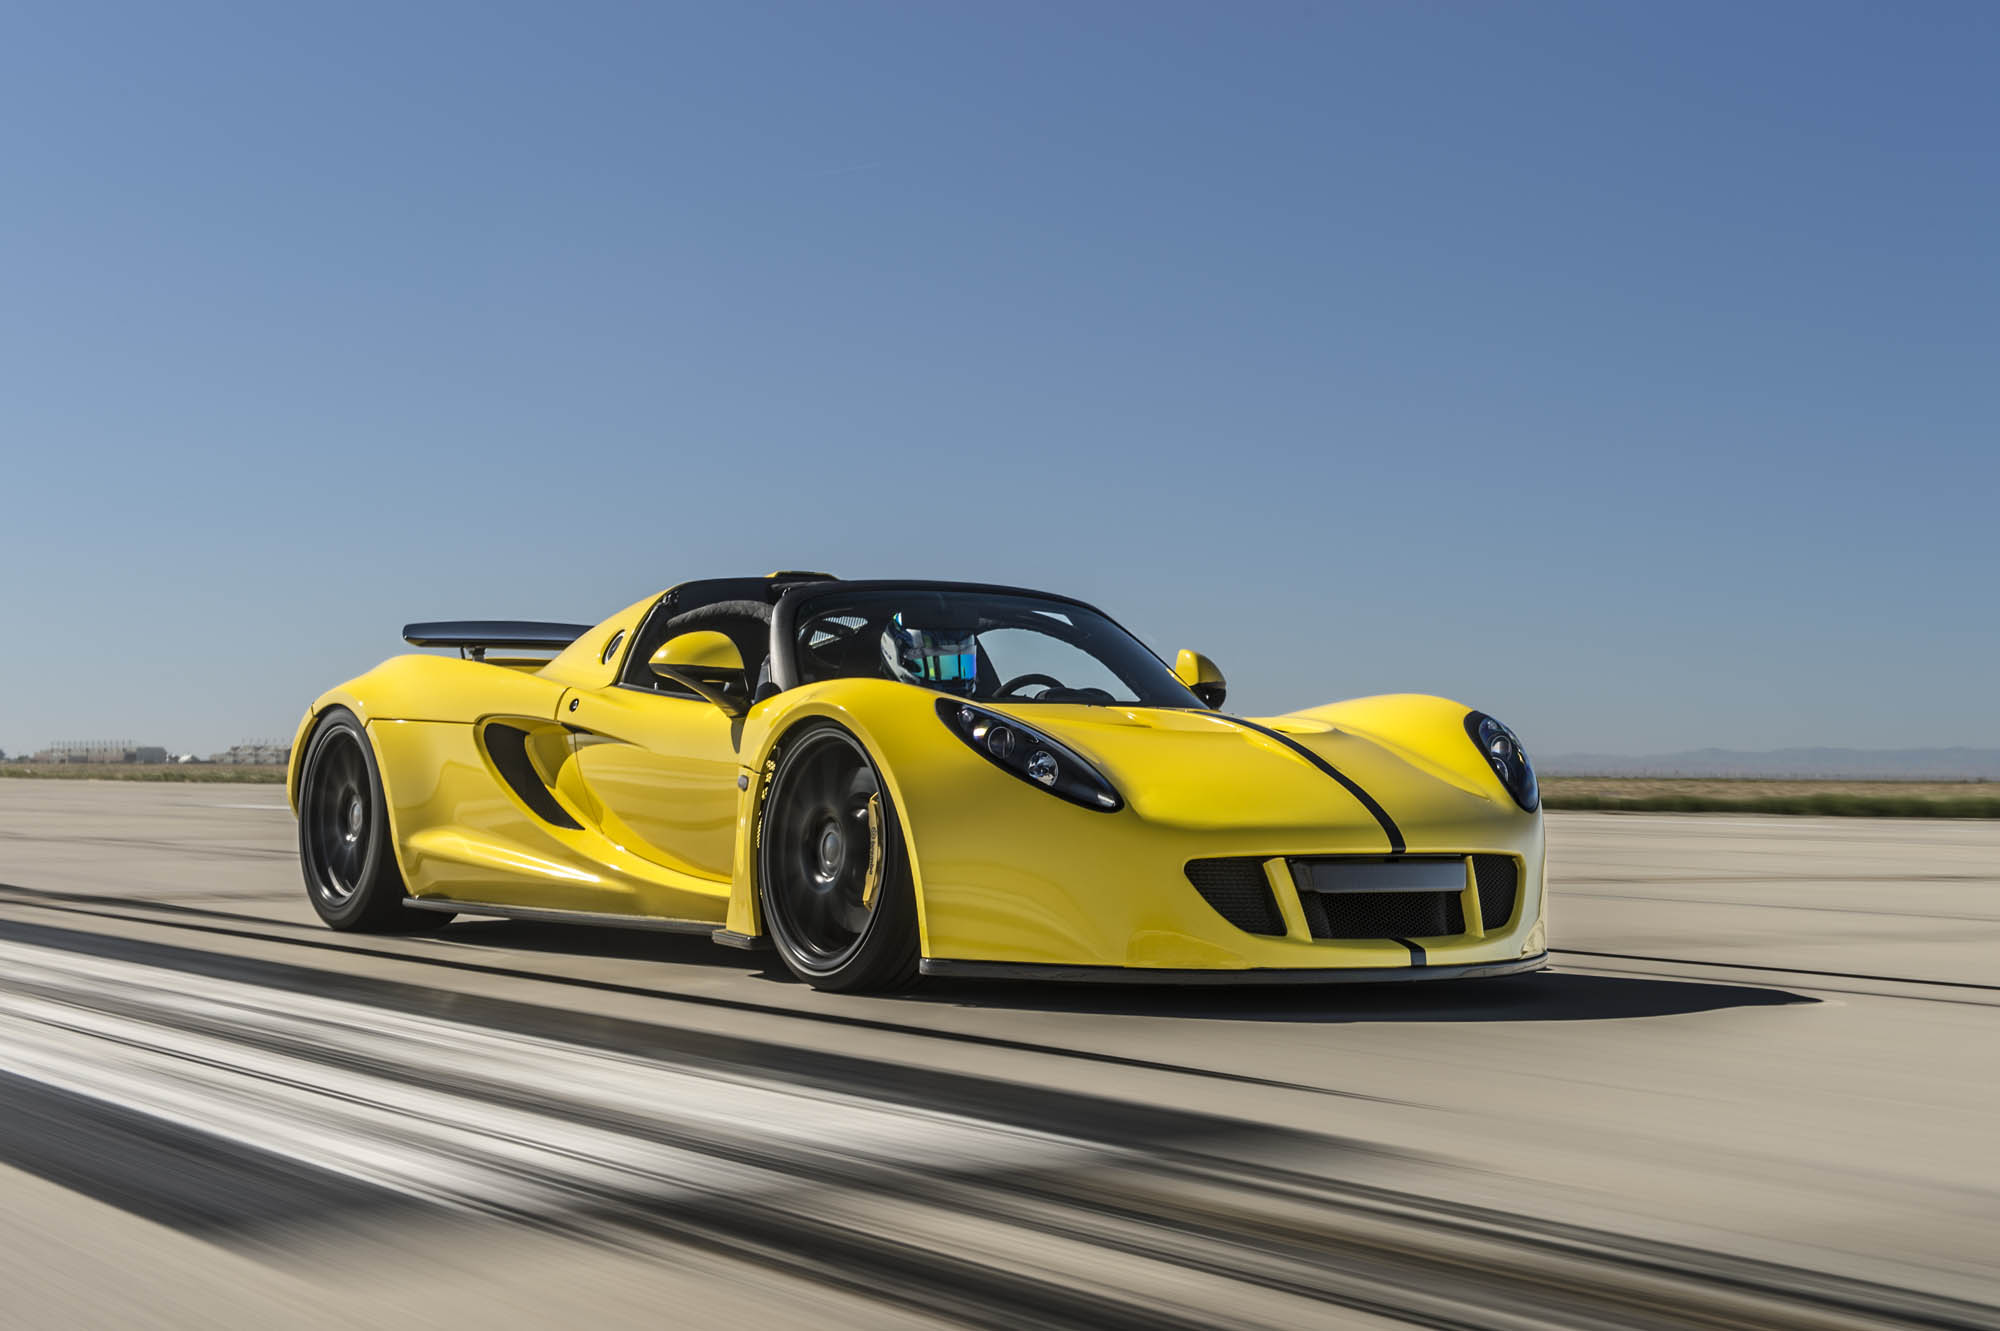 Hennessey Venom GT convertible - 2016 - front side-face / profil avant - World Record